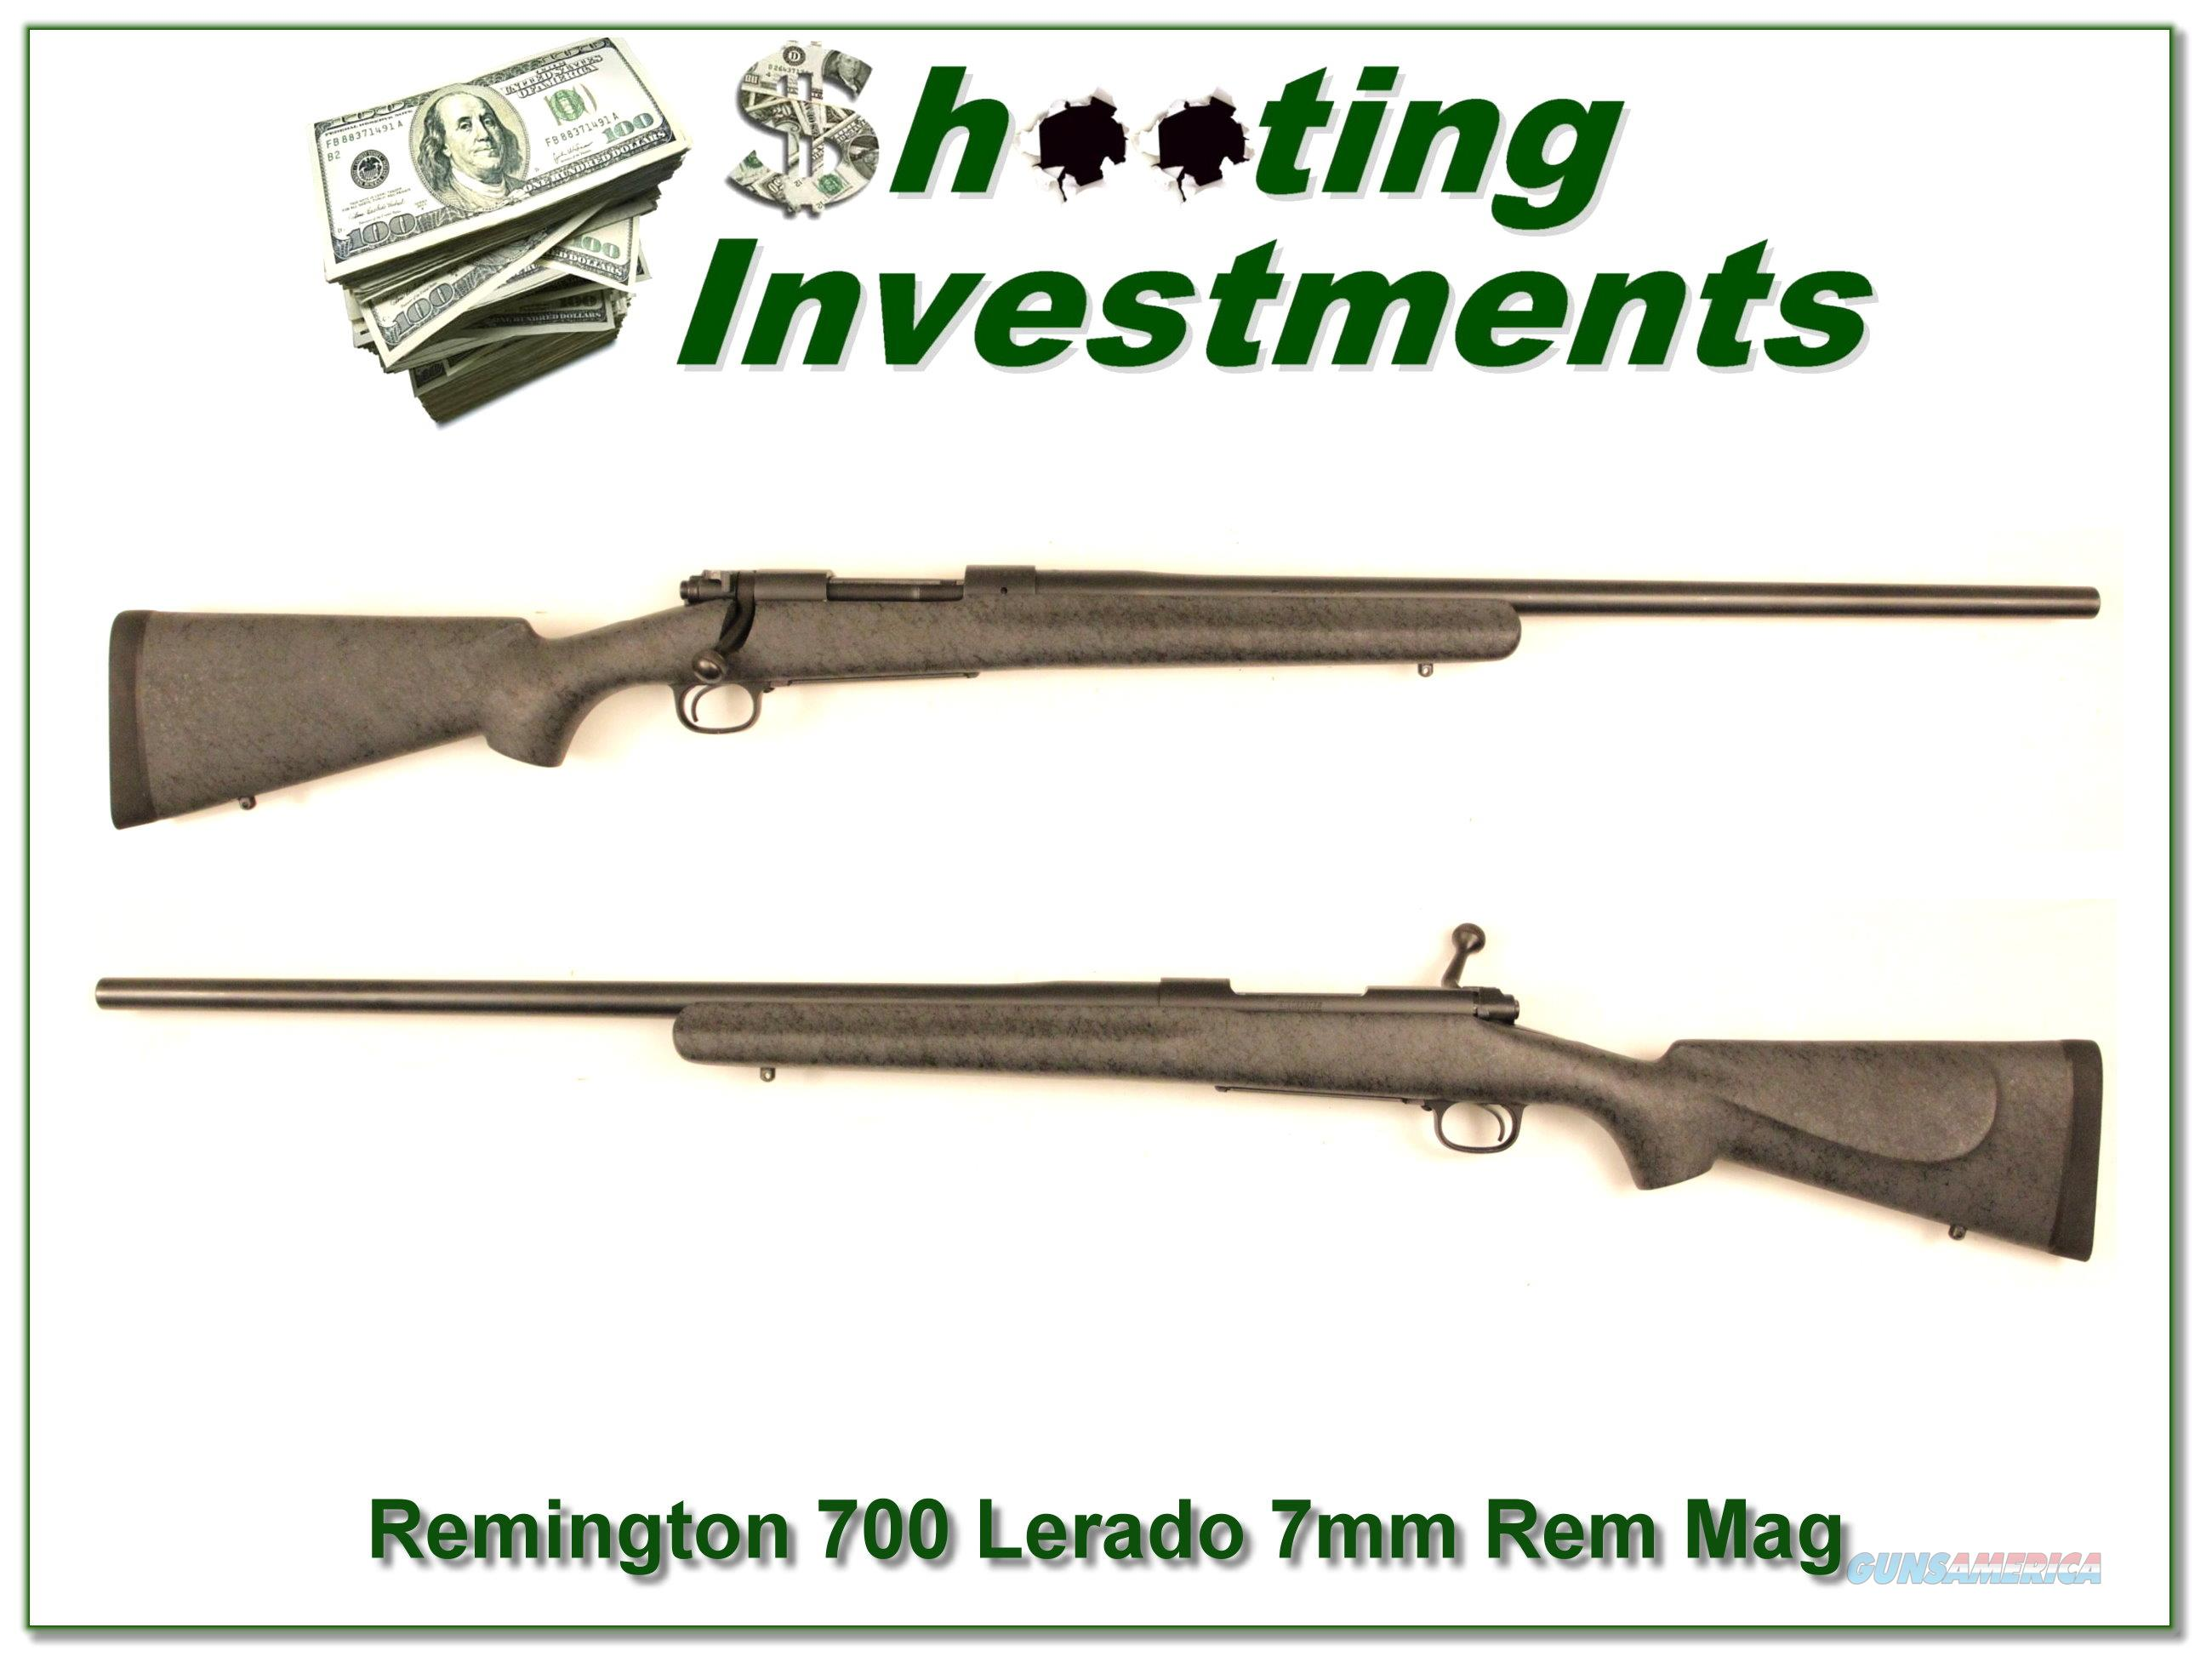 Winchester 70 Laredo 7mm Rem Mag Exc Cond!  Guns > Rifles > Remington Rifles - Modern > Model 700 > Sporting